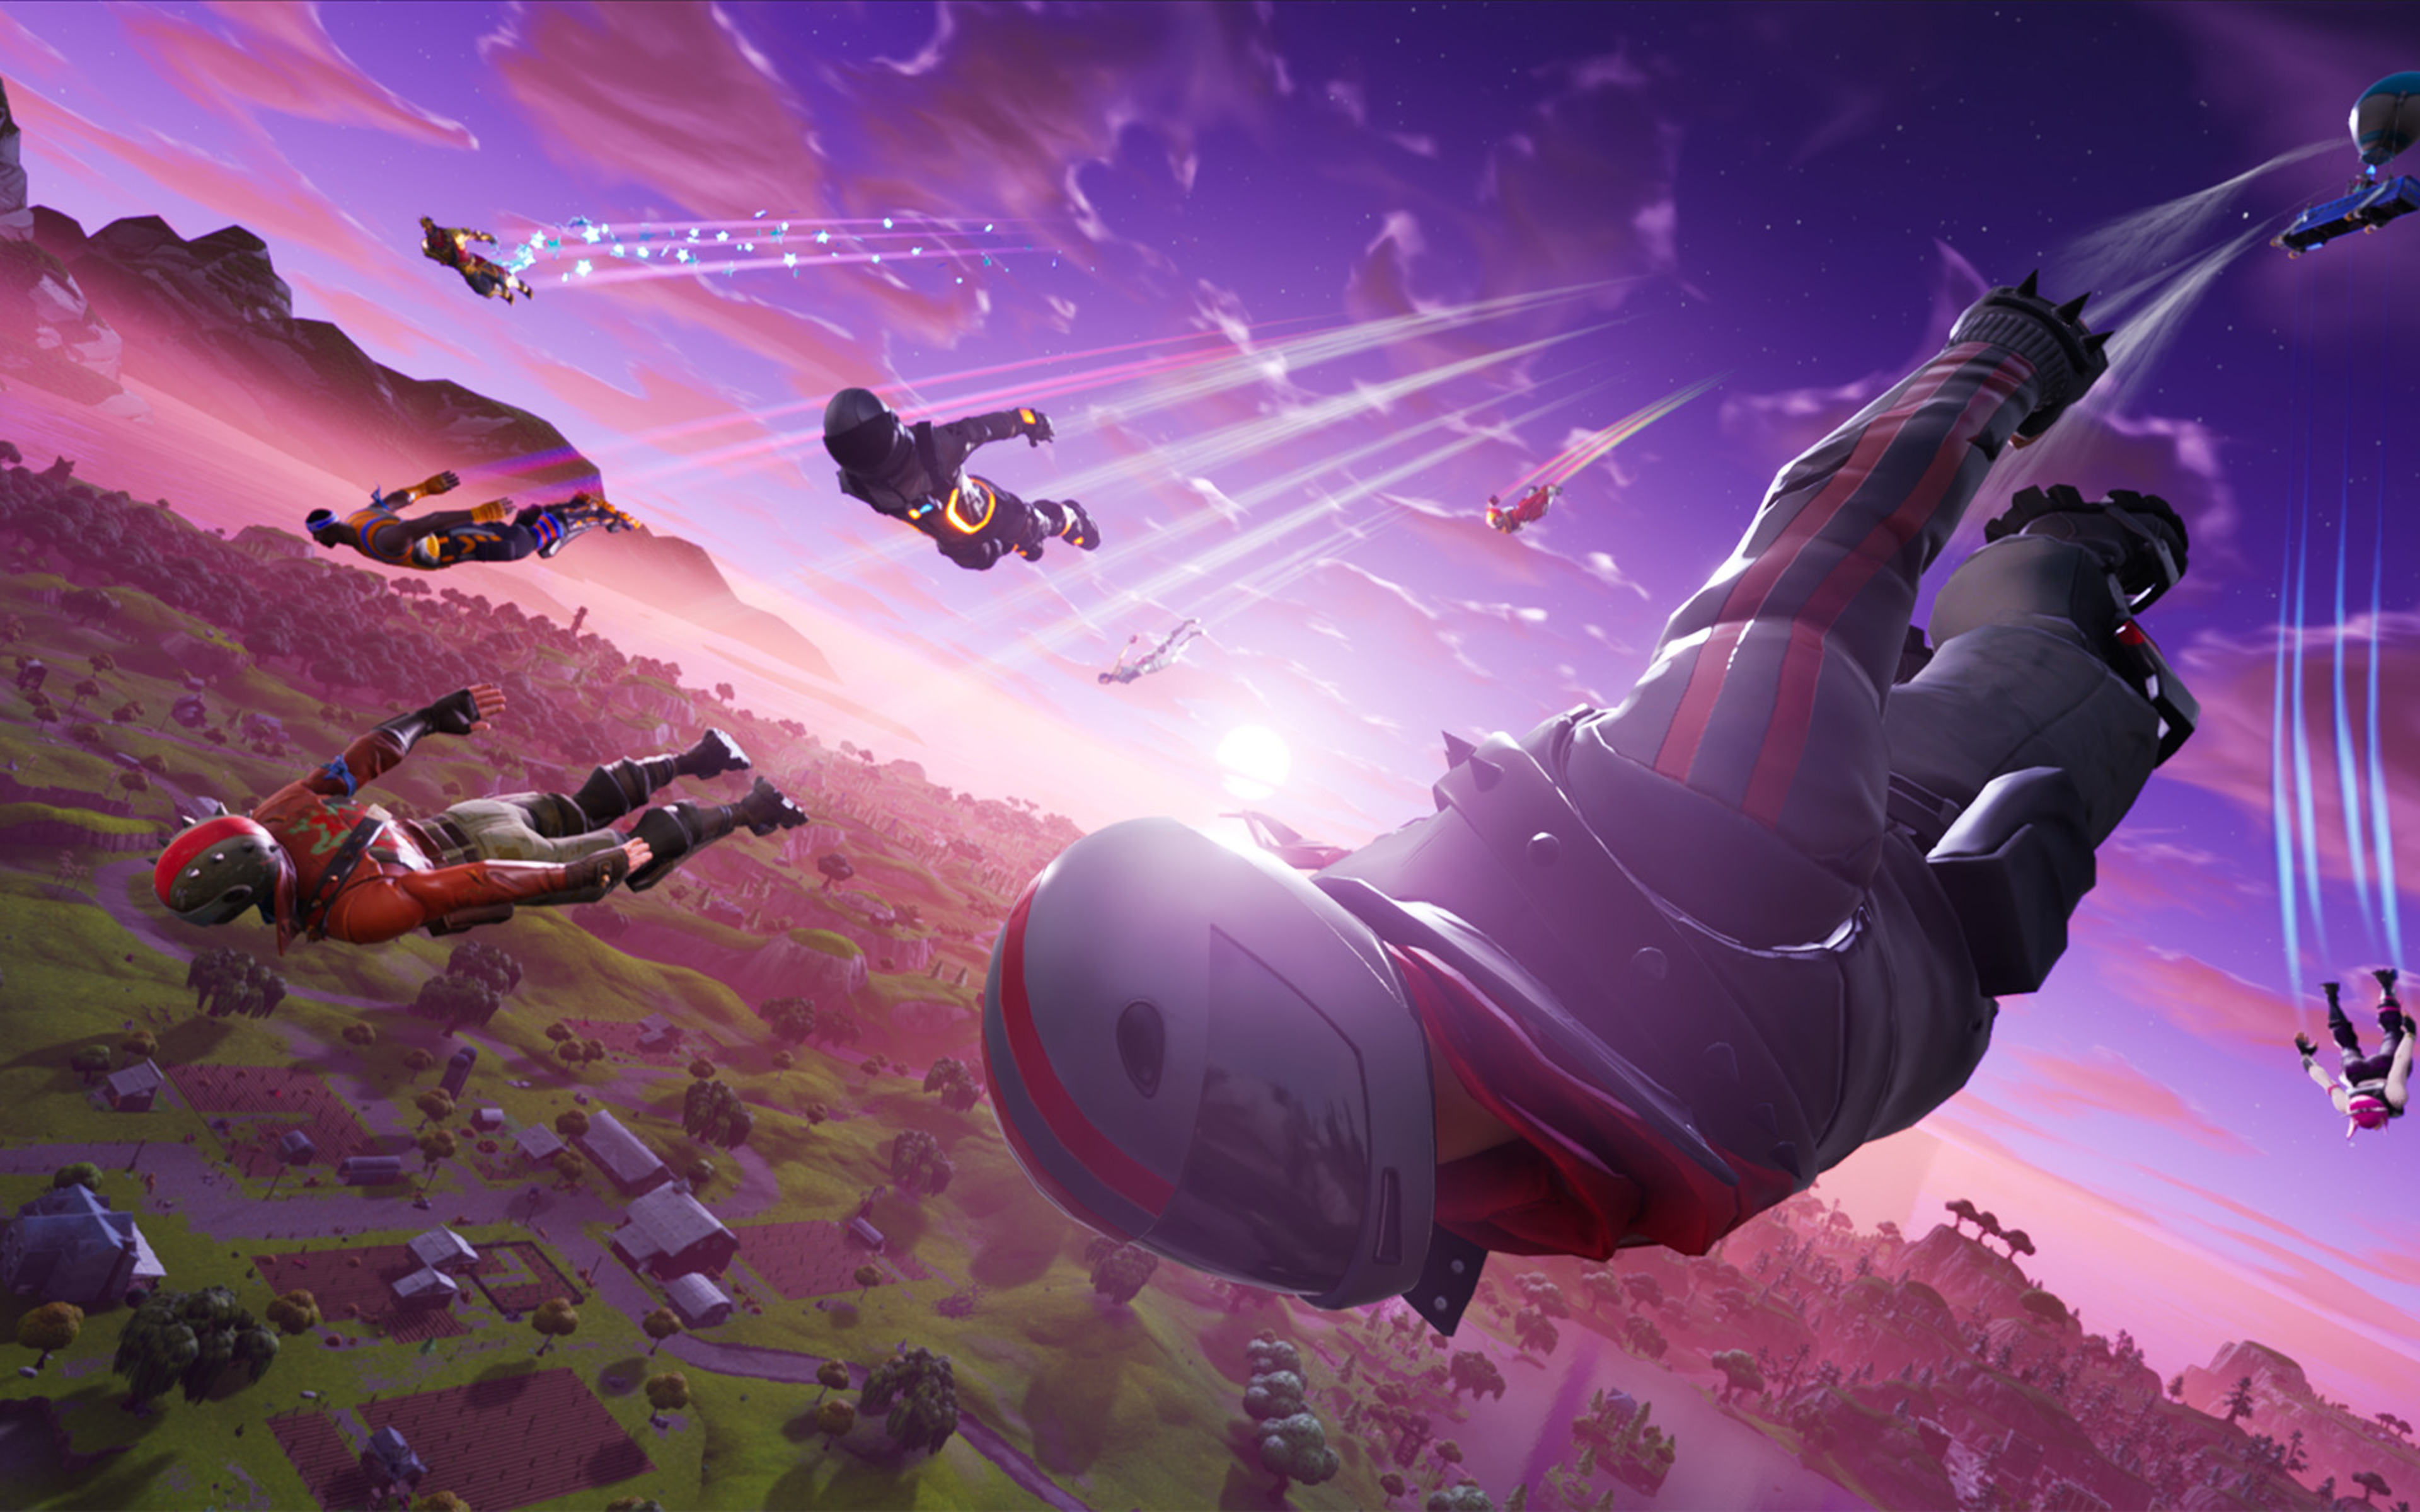 [Obrazek: fortnite-battle-royale-hd-wz-3840x2400.jpg]